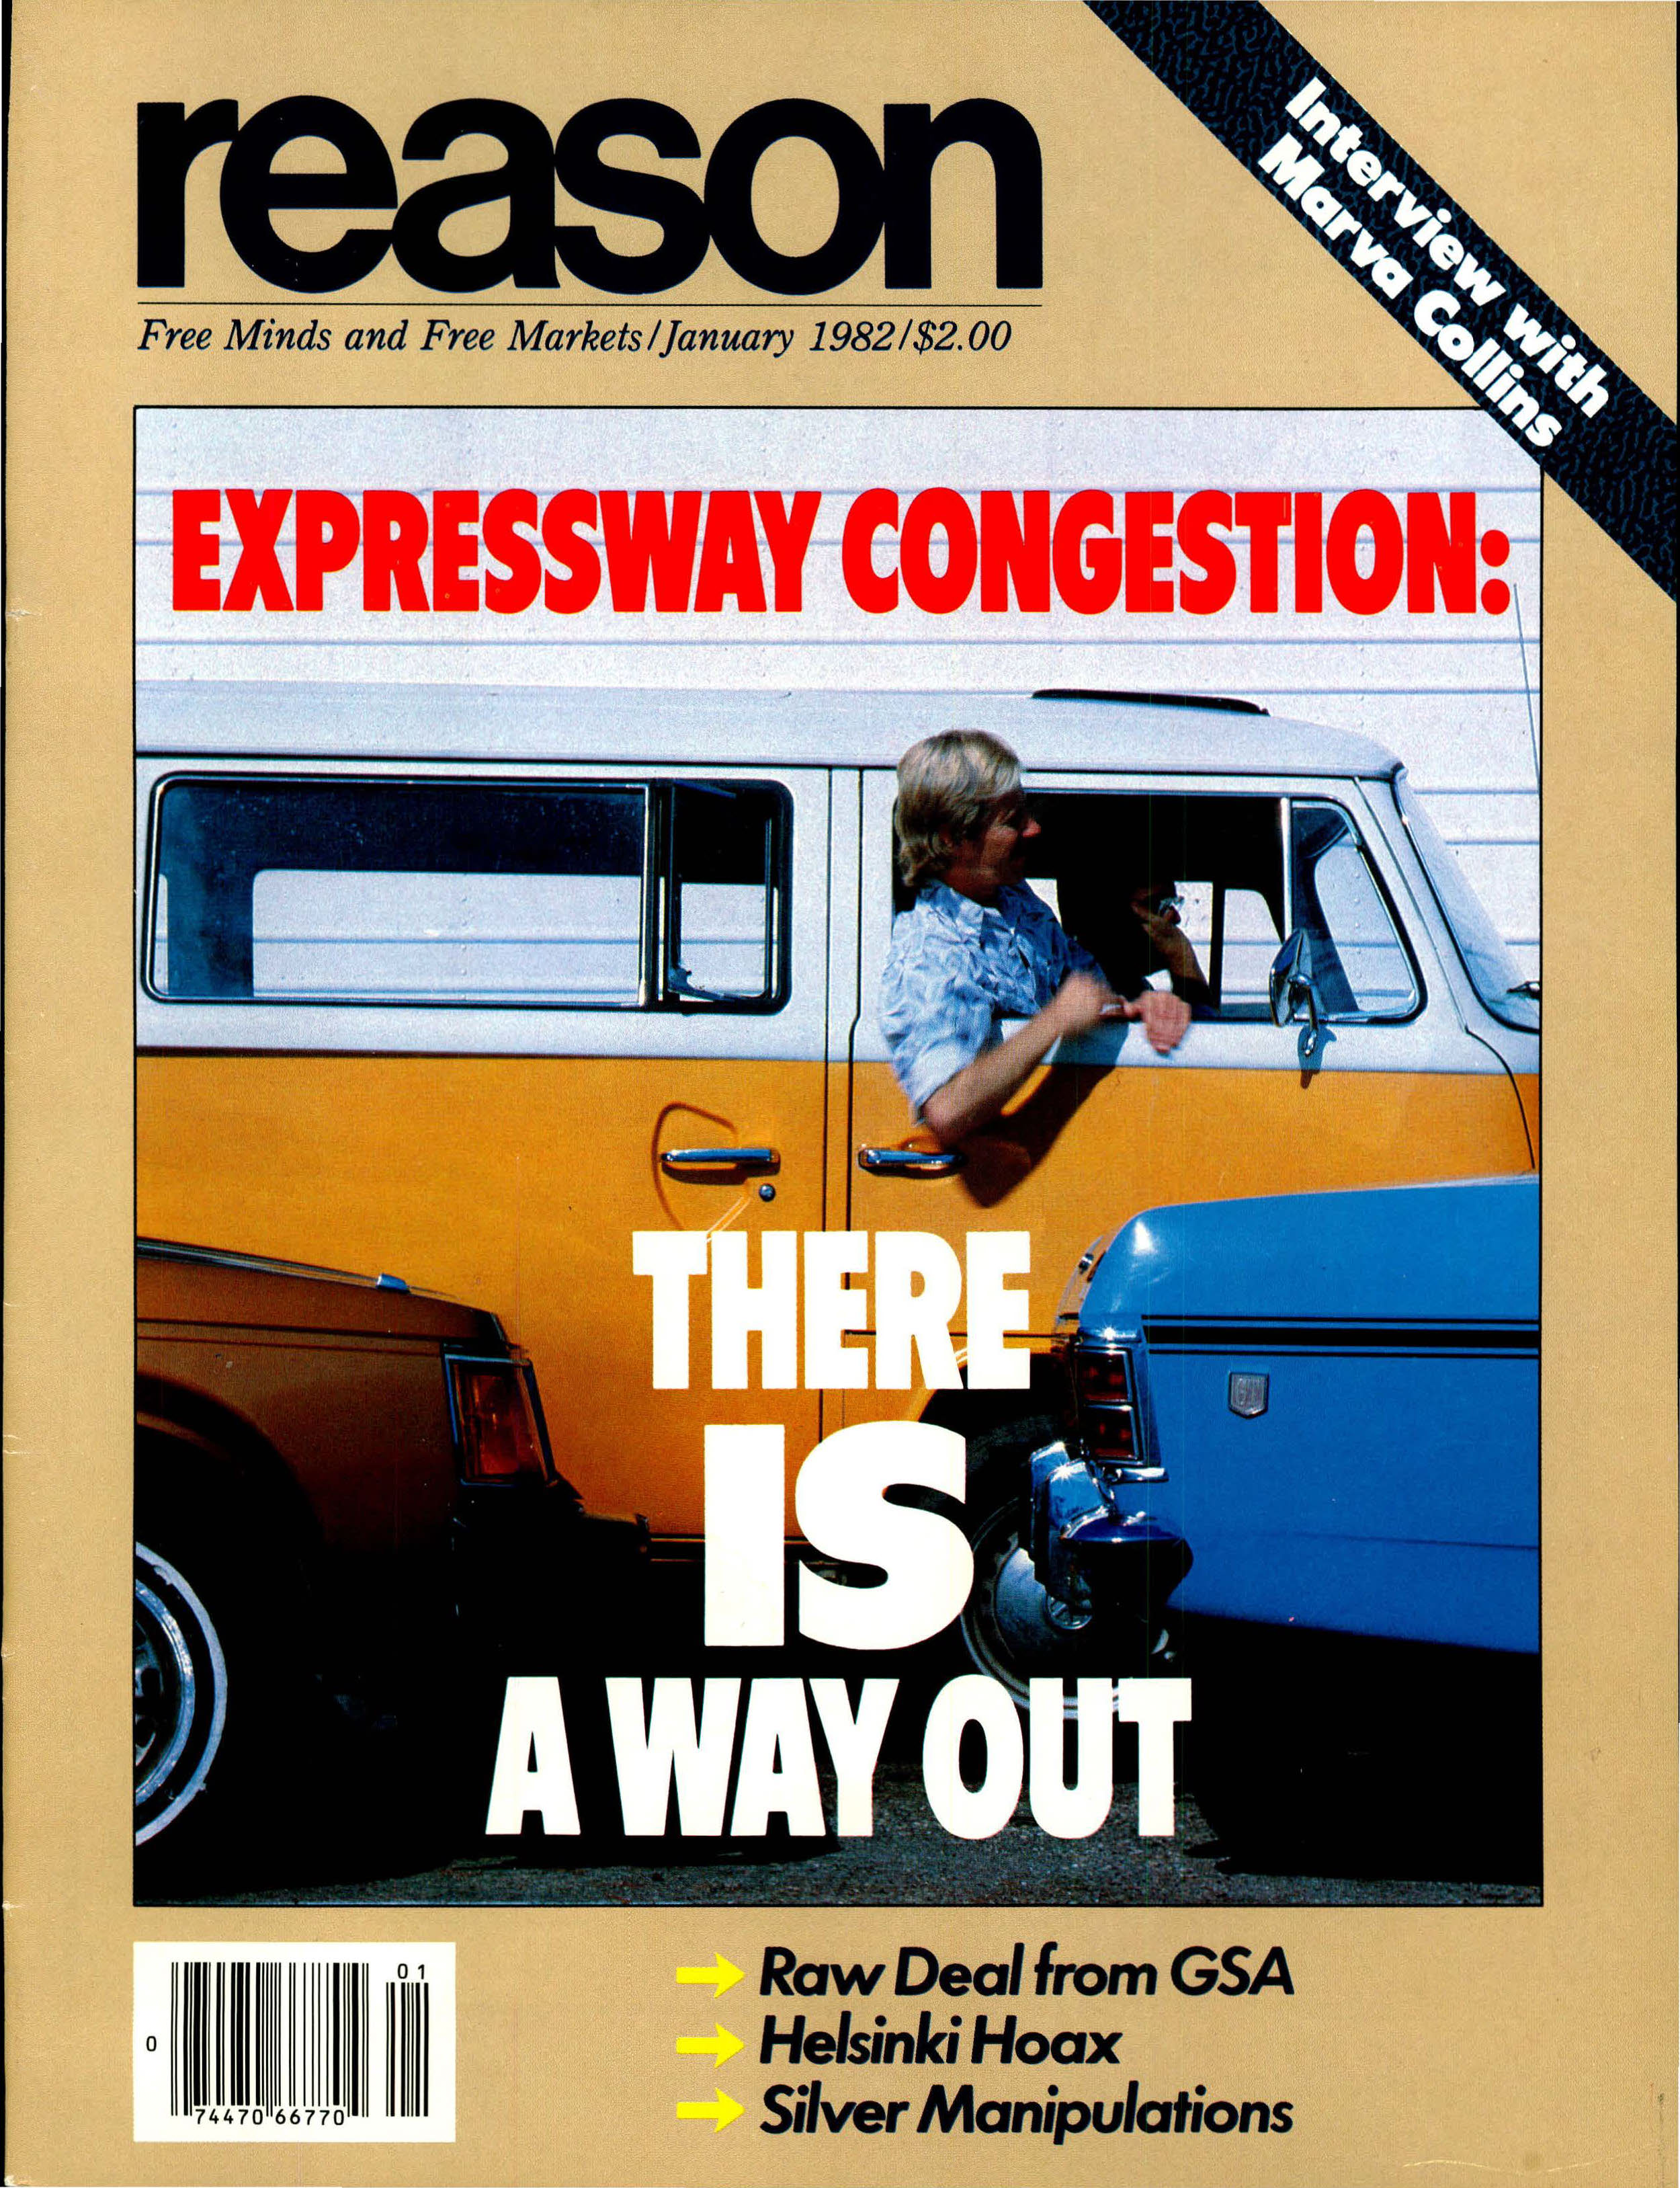 Reason Magazine, January 1982 cover image